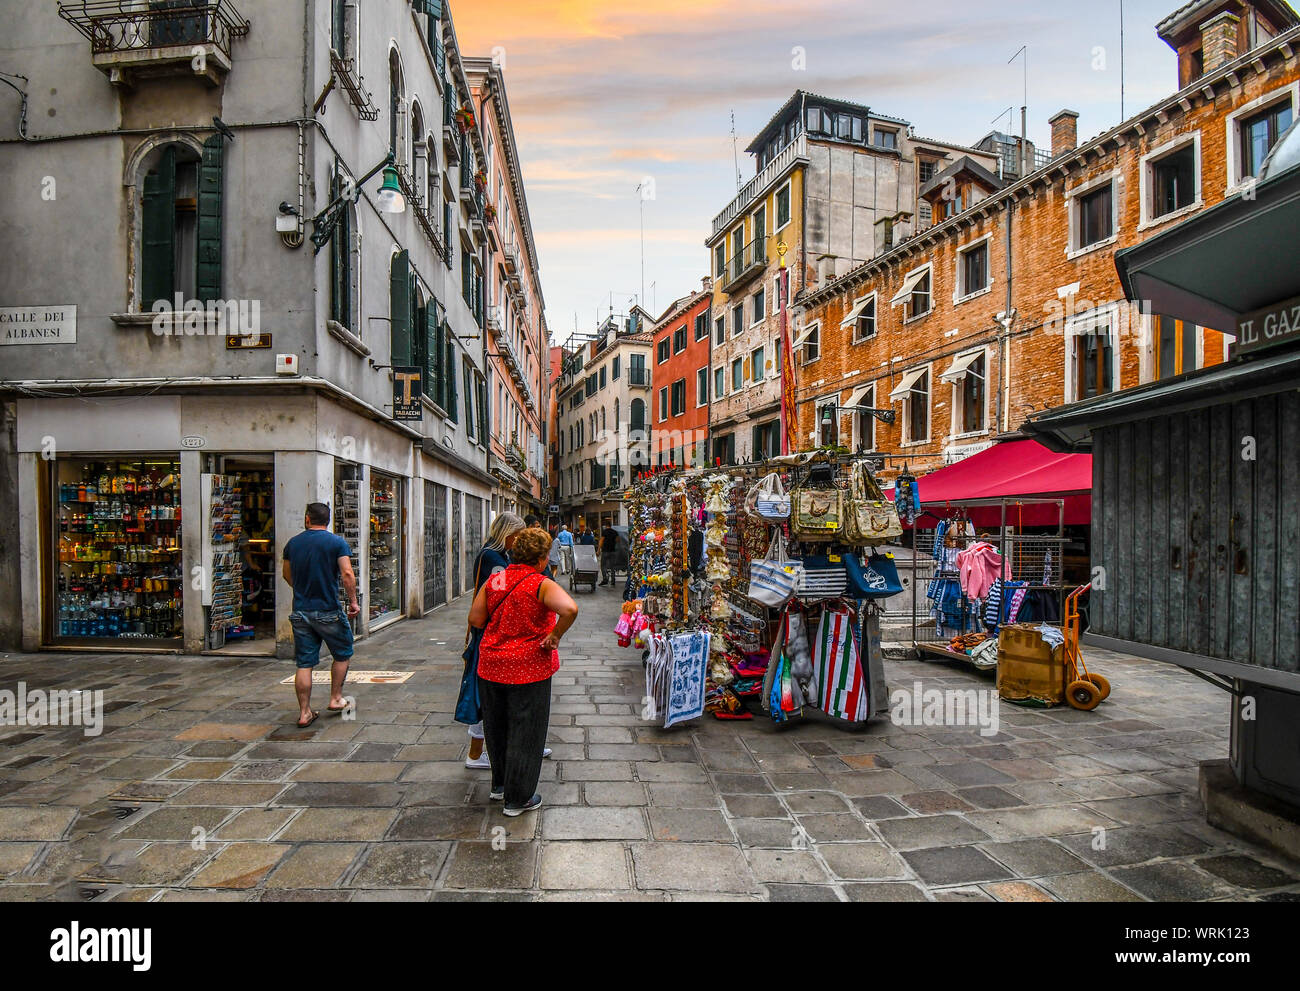 Tourists shop for souvenirs and purses in front of a market as they sightsee on an early morning in the historical center of Venice, Italy. Stock Photo